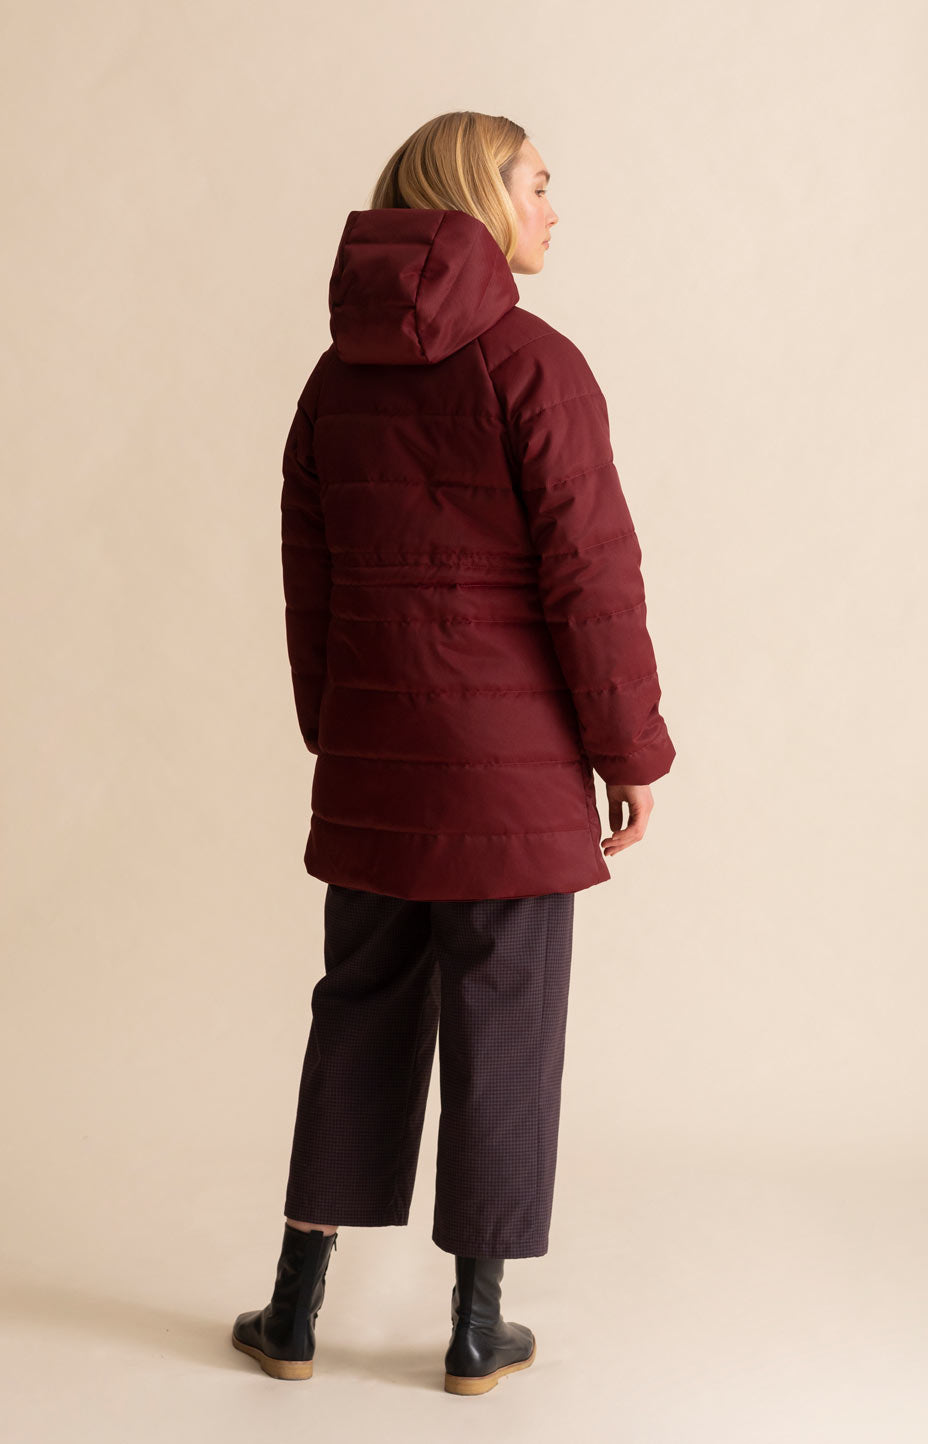 Hug coat cabernet red